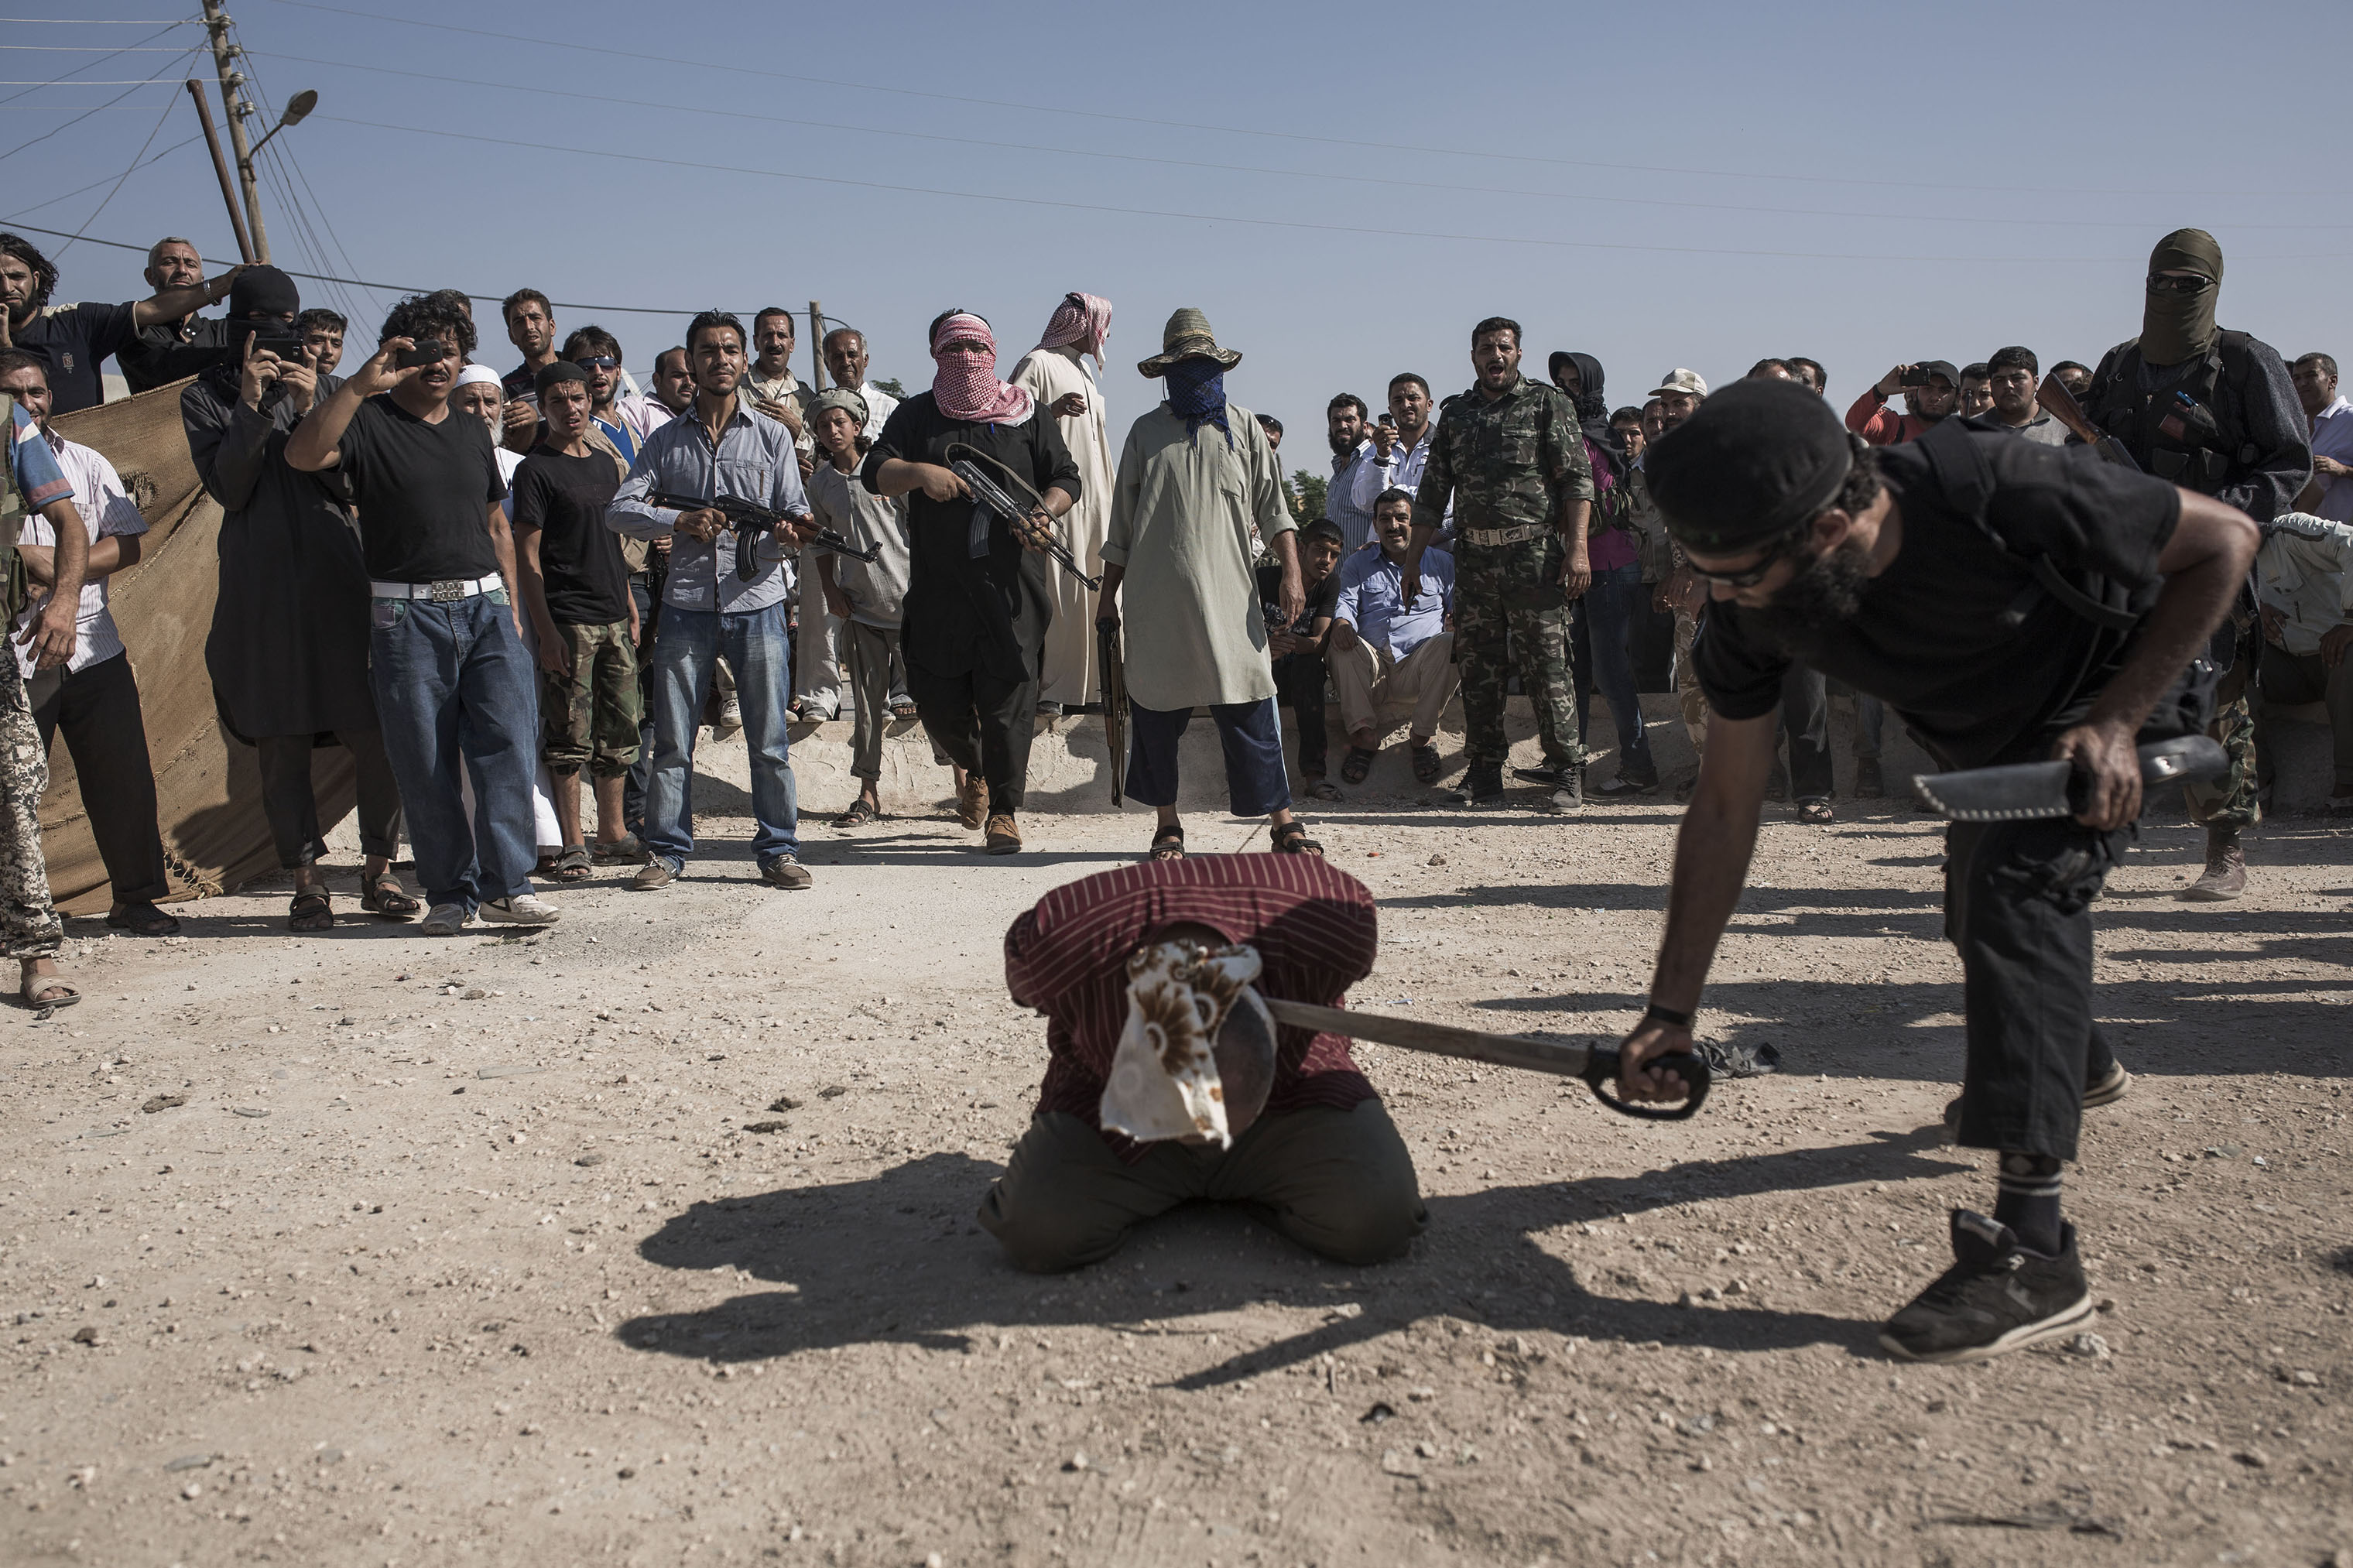 A soldier from Assad's regime—charged with being an informant, murder, stealing and delivering 10 Free Syrian Army soldiers to the regime—is executed by ISIS in the town of Ehtemlat in northern Syria, 2013.